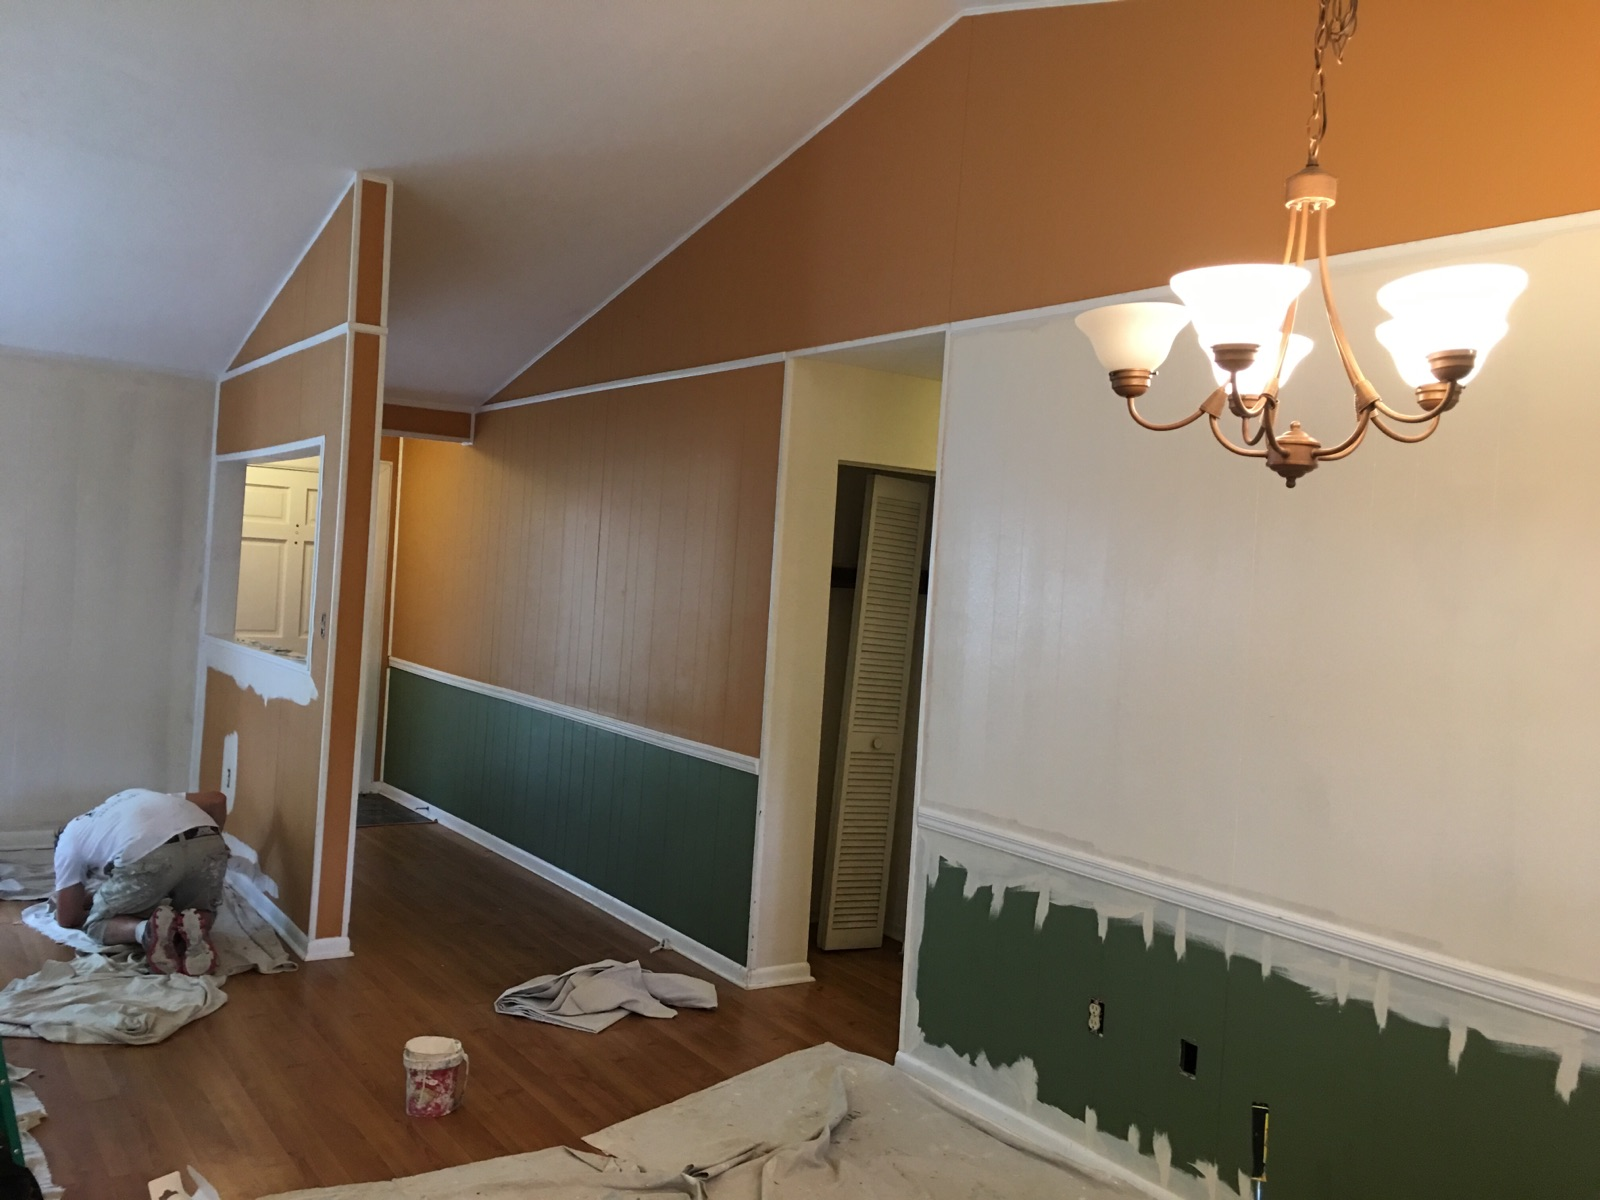 House painting interior services in gainesville fl